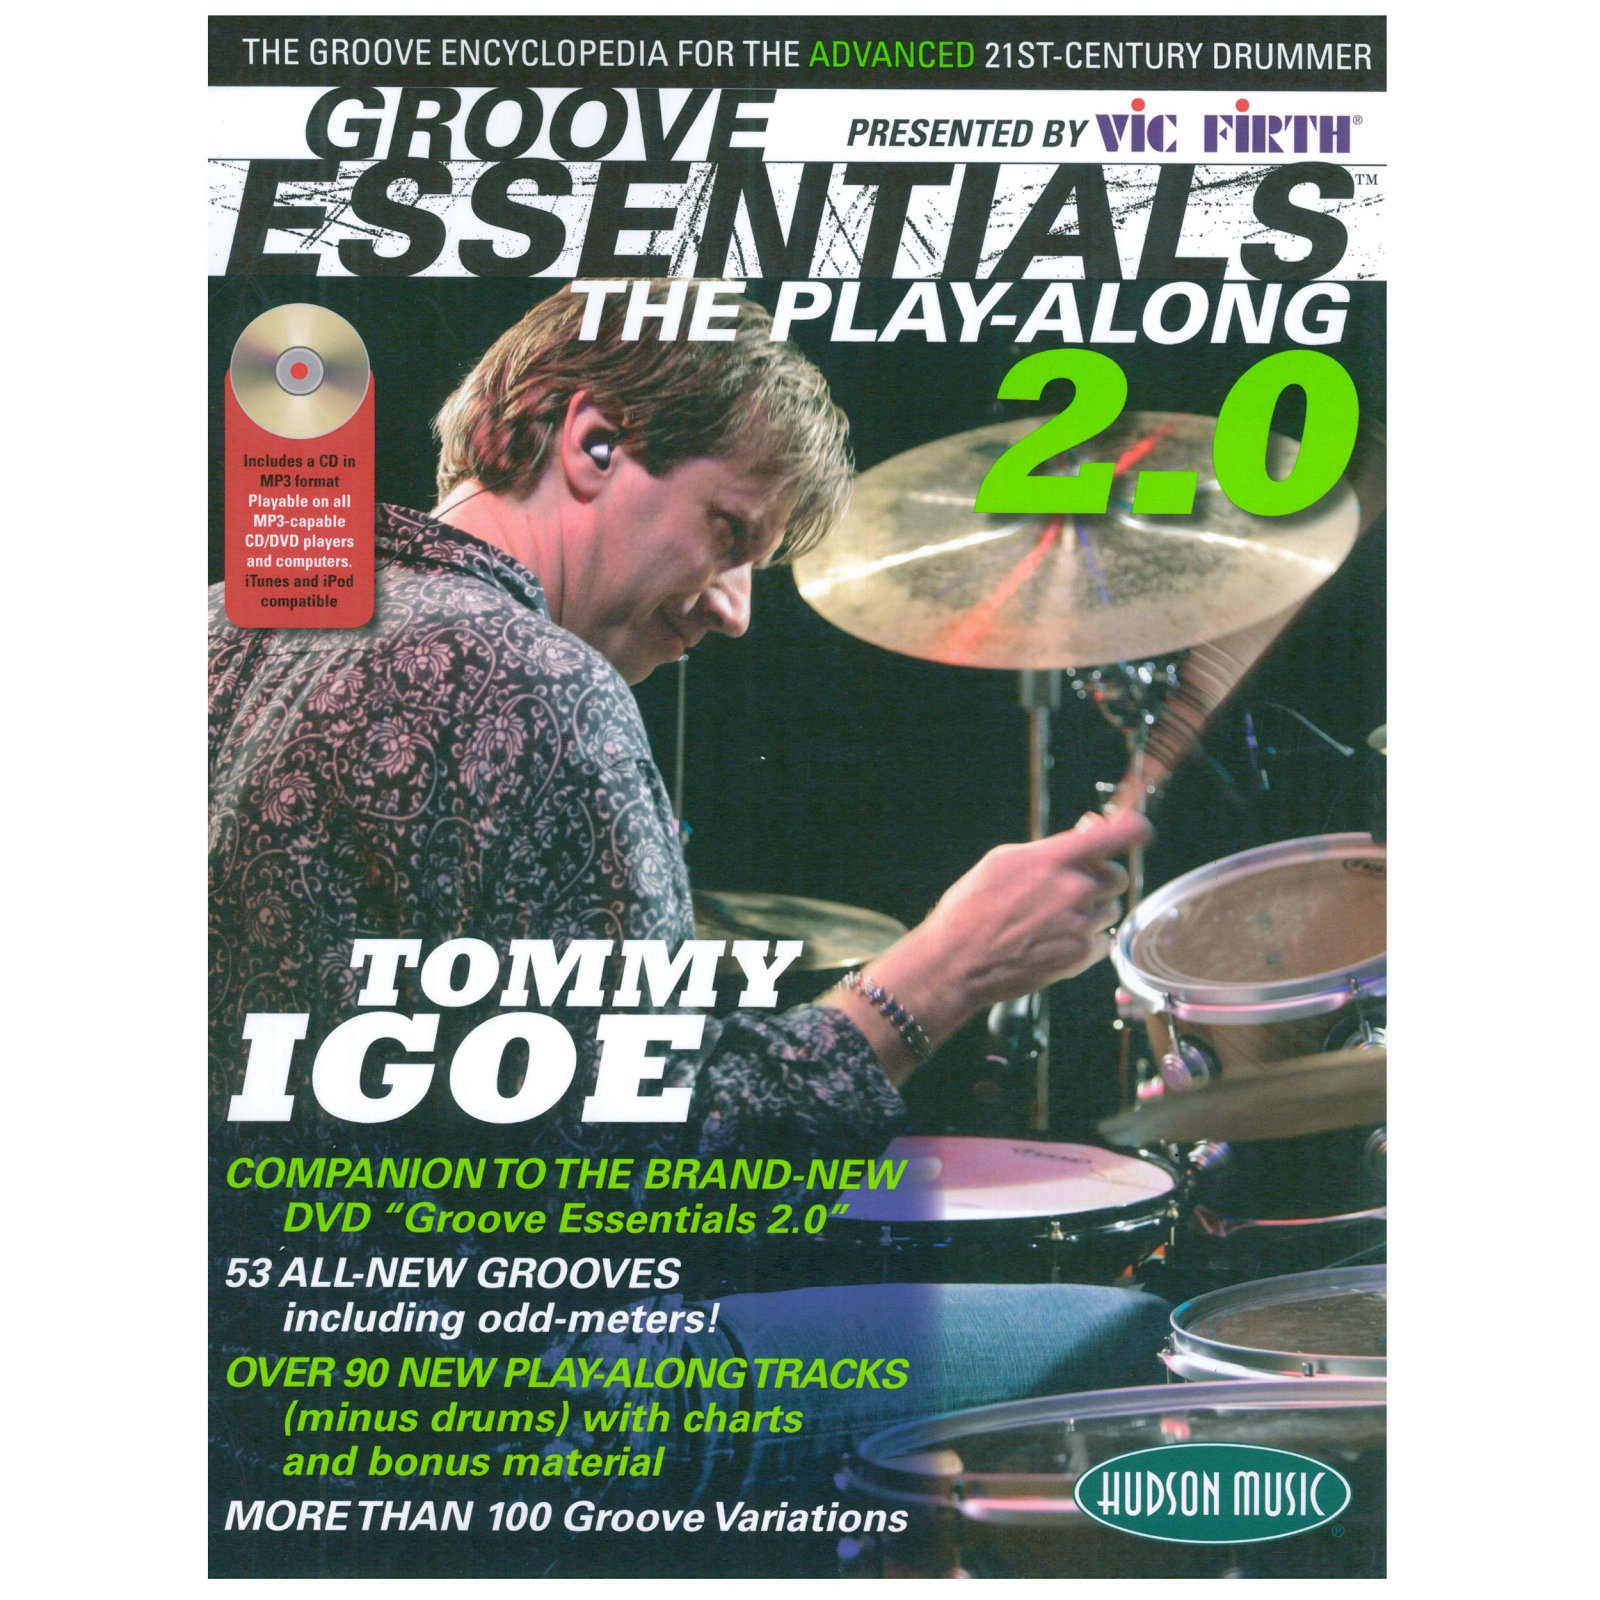 Tommy Igoe: Groove Essentials - The Play-along 2.0. Drums Sheet Music CD